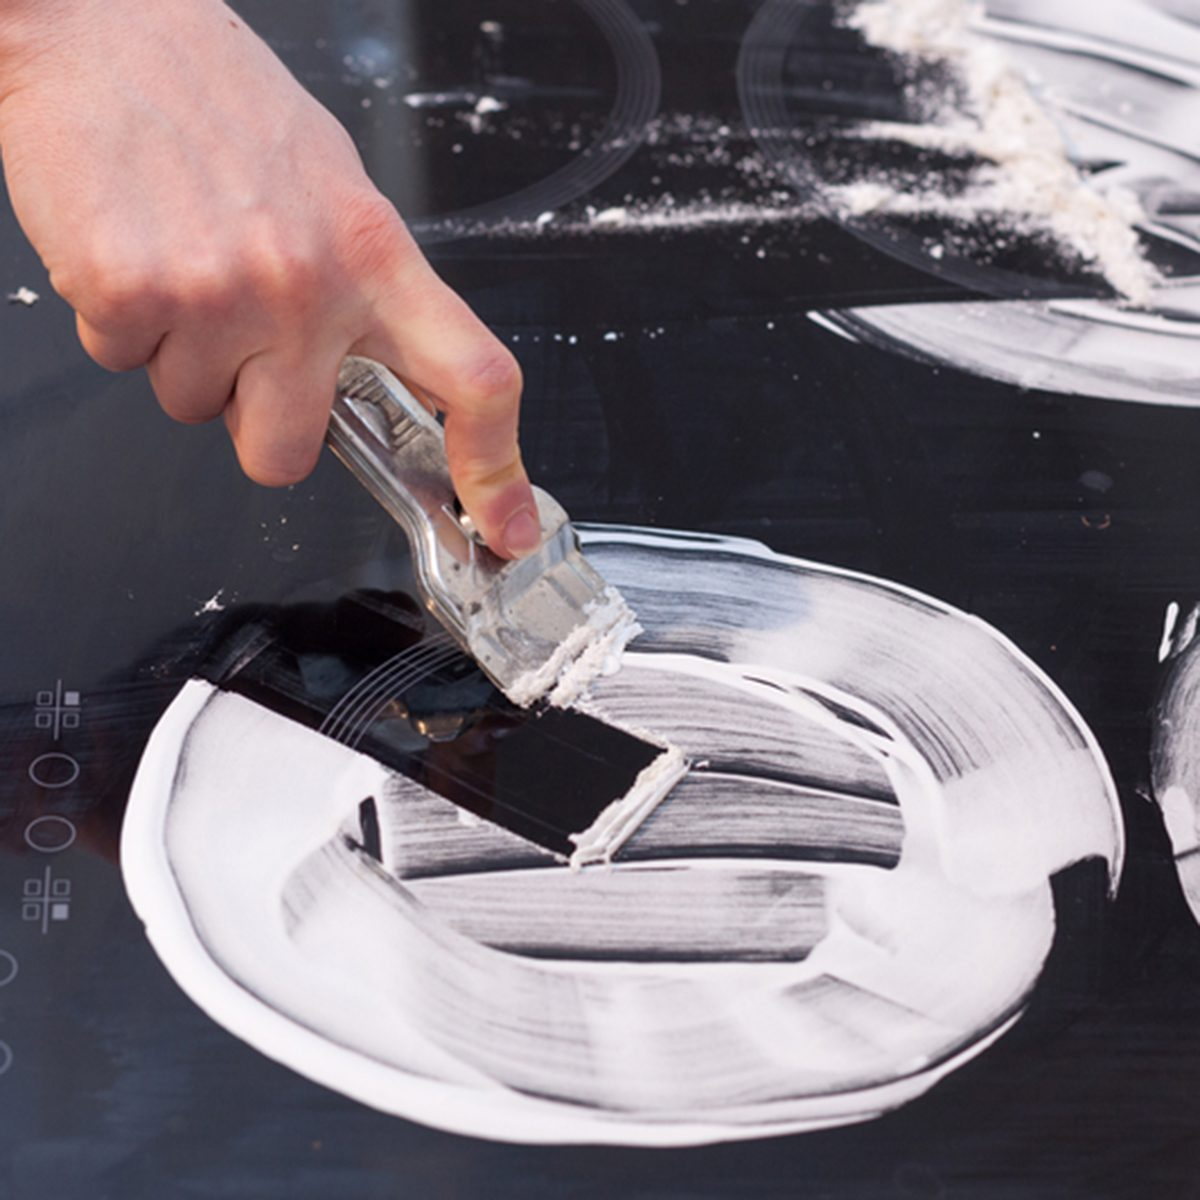 Housewife cleaning and polish electric cooker. Black shiny surface of kitchen top, hands with foam, glass scraper, bottle of cleaning agent; Shutterstock ID 675139813; Job (TFH, TOH, RD, BNB, CWM, CM): TOH